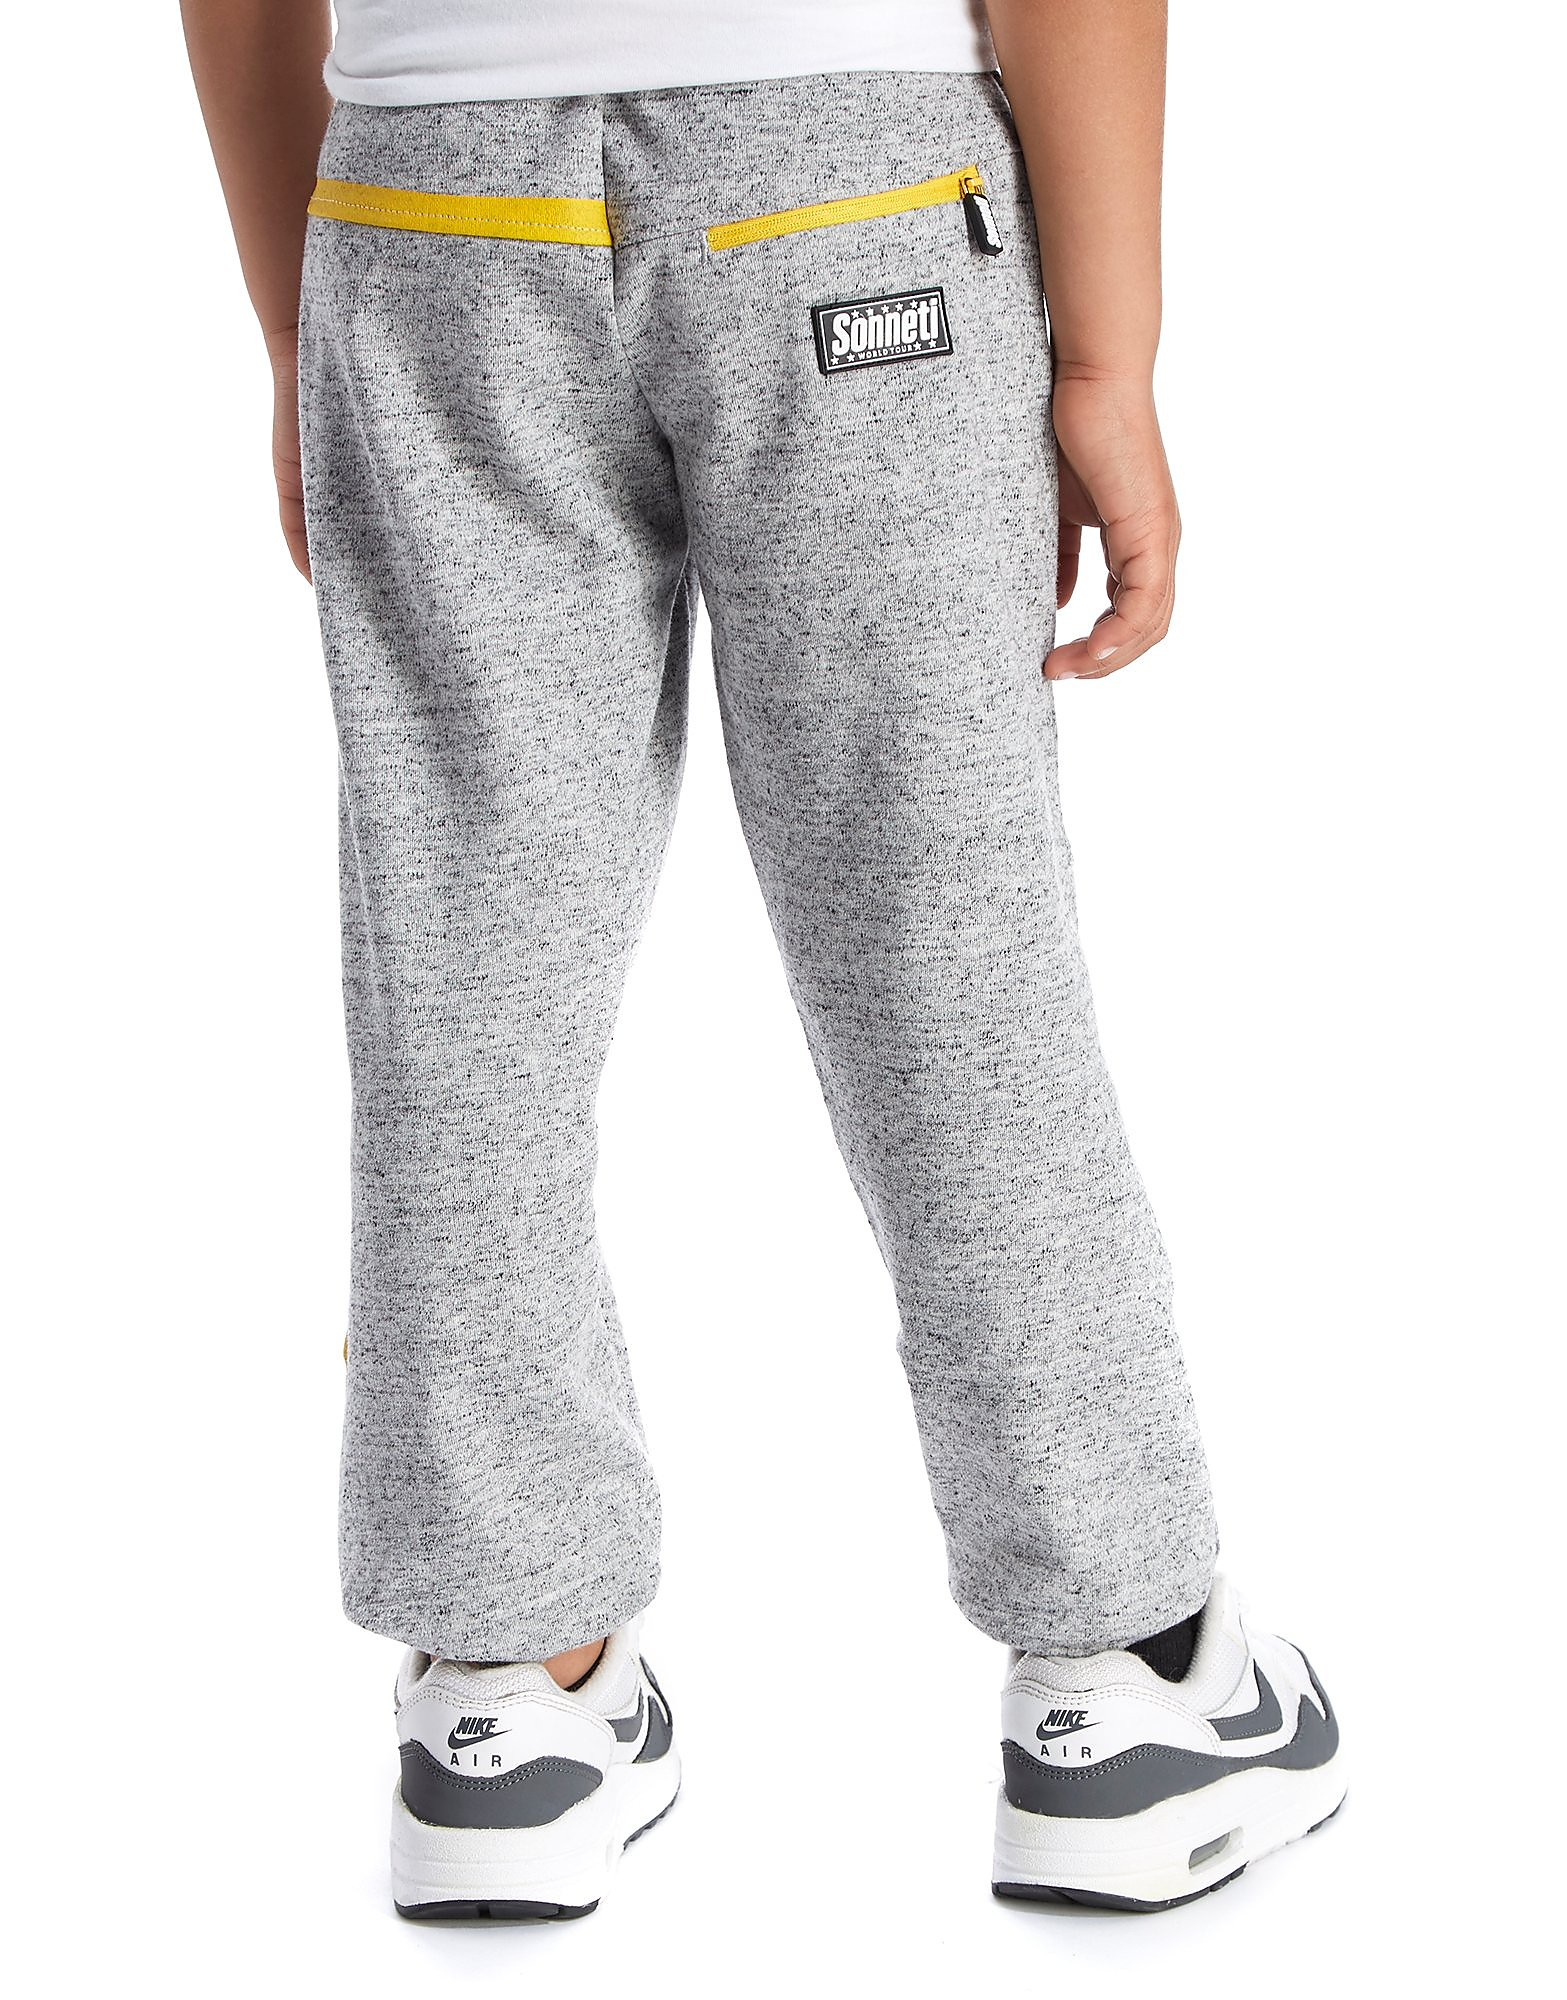 Sonneti Animate Pants Children